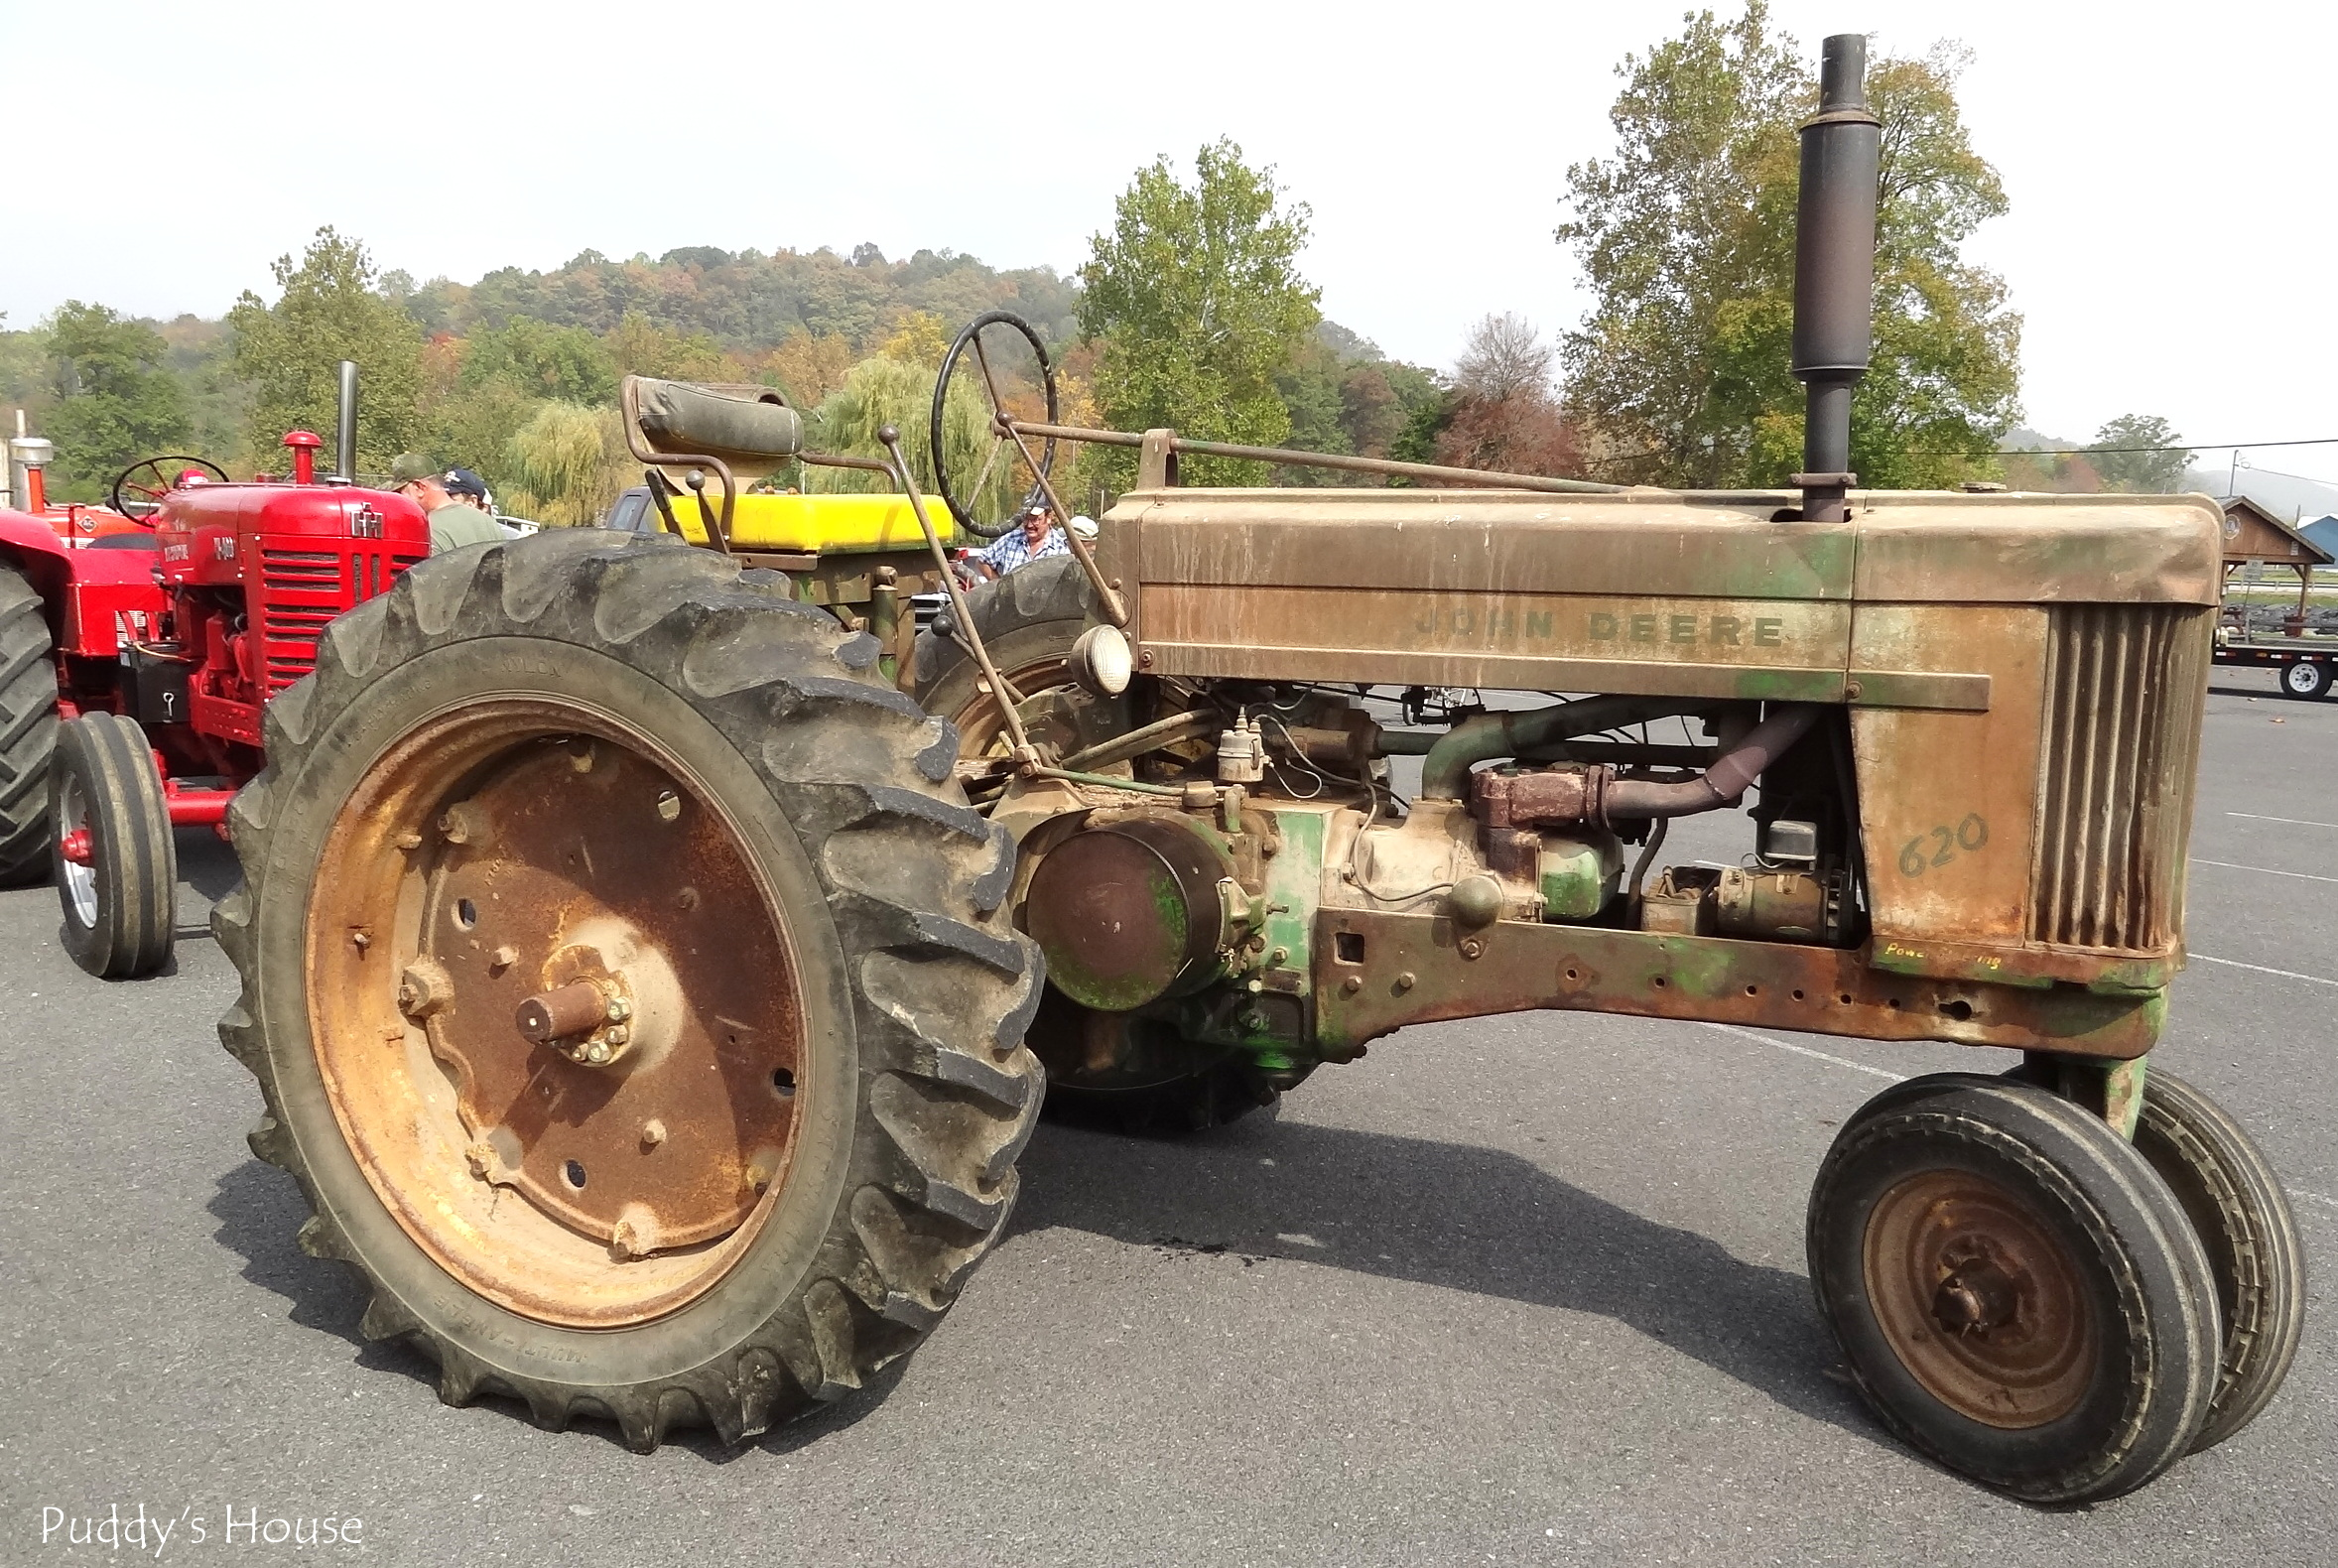 Oldest Antique Tractors : Annual tractor ride edition puddy s house